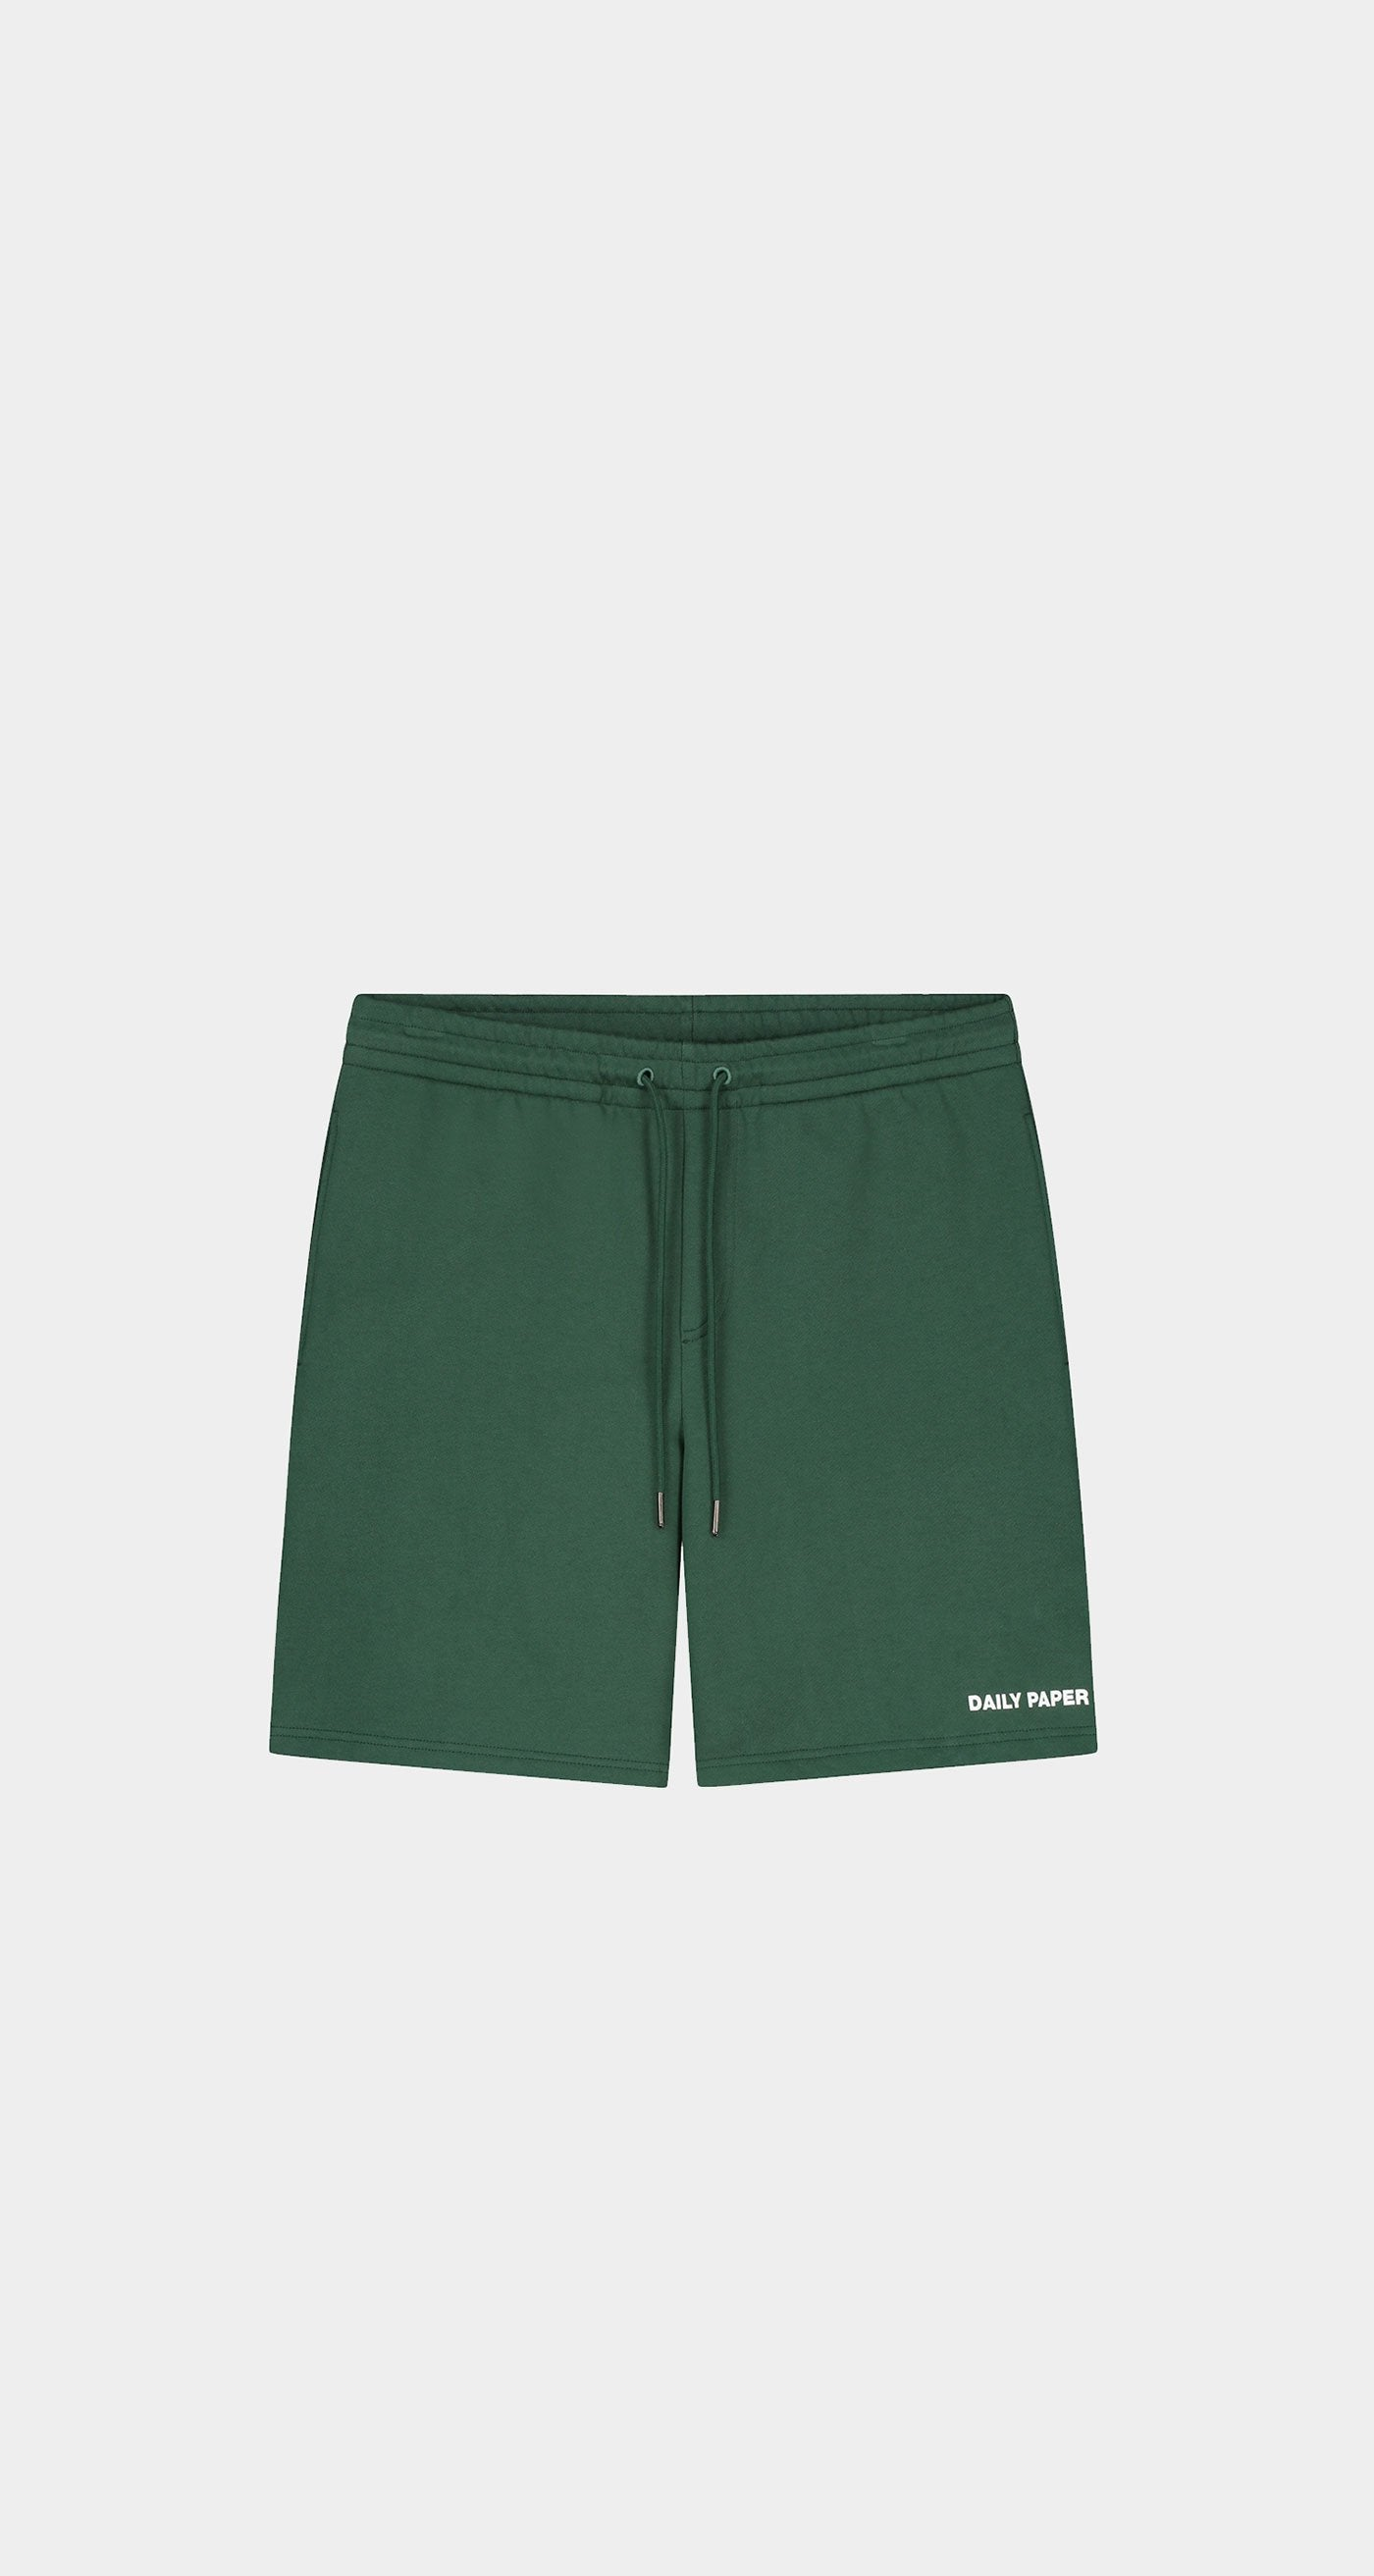 Daily Paper - Pineneedle Green Refarid Shorts - Men Front